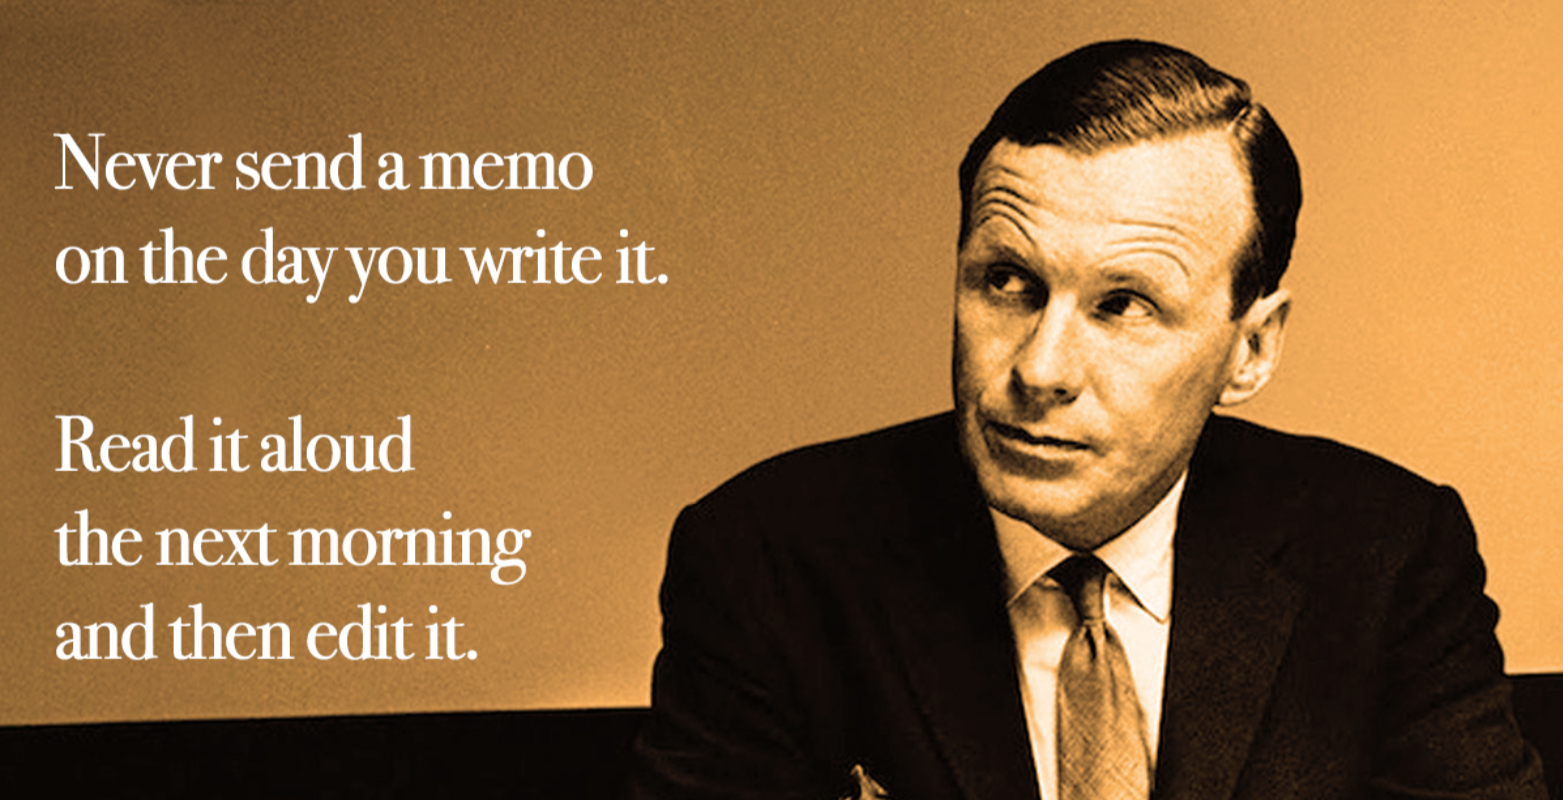 218853 how to write david ogilvy 09 adcbe6 original 1469110346